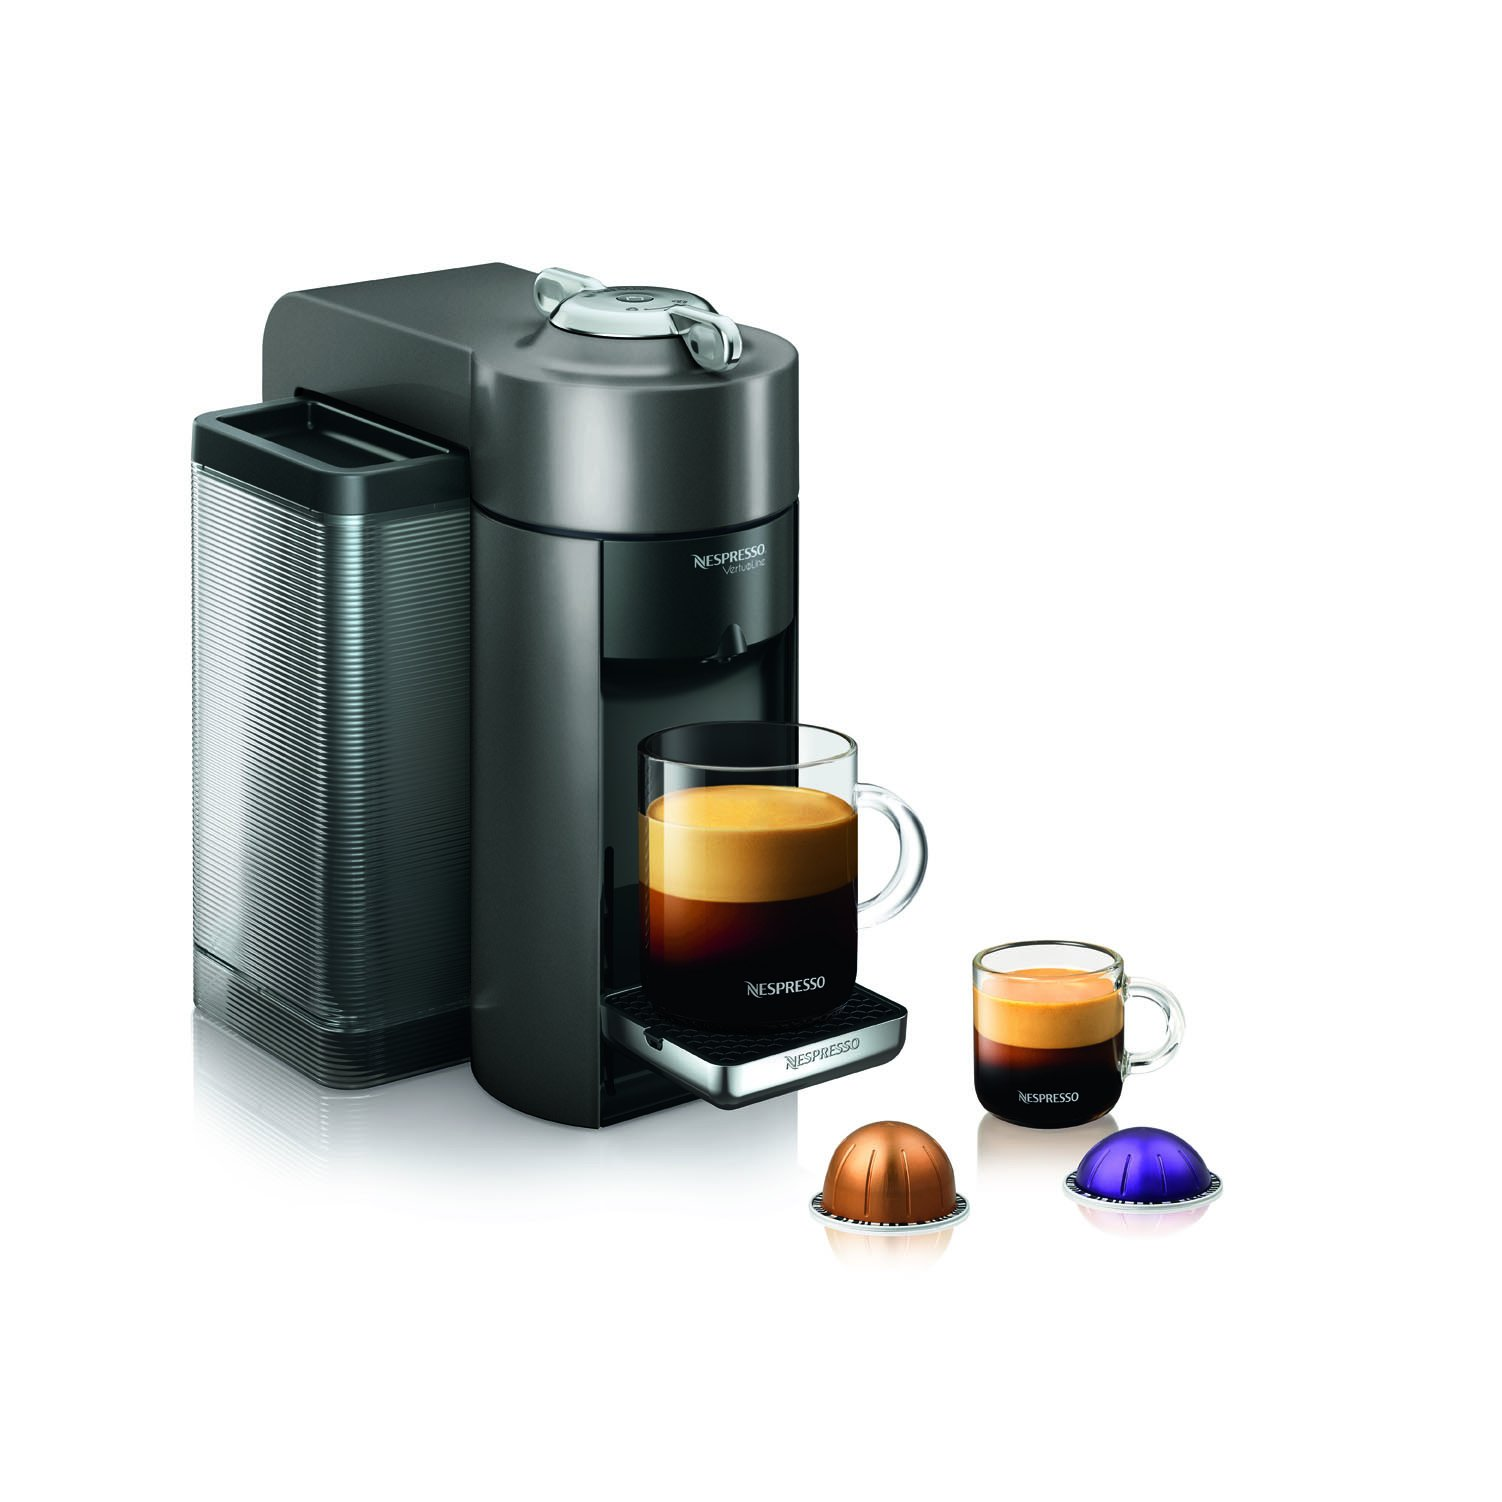 Nespresso GCC1-US-GM-NE VertuoLine Evoluo Deluxe Coffee and Espresso Maker, Graphite Metal (Discontinued Model) by Nestle Nespresso